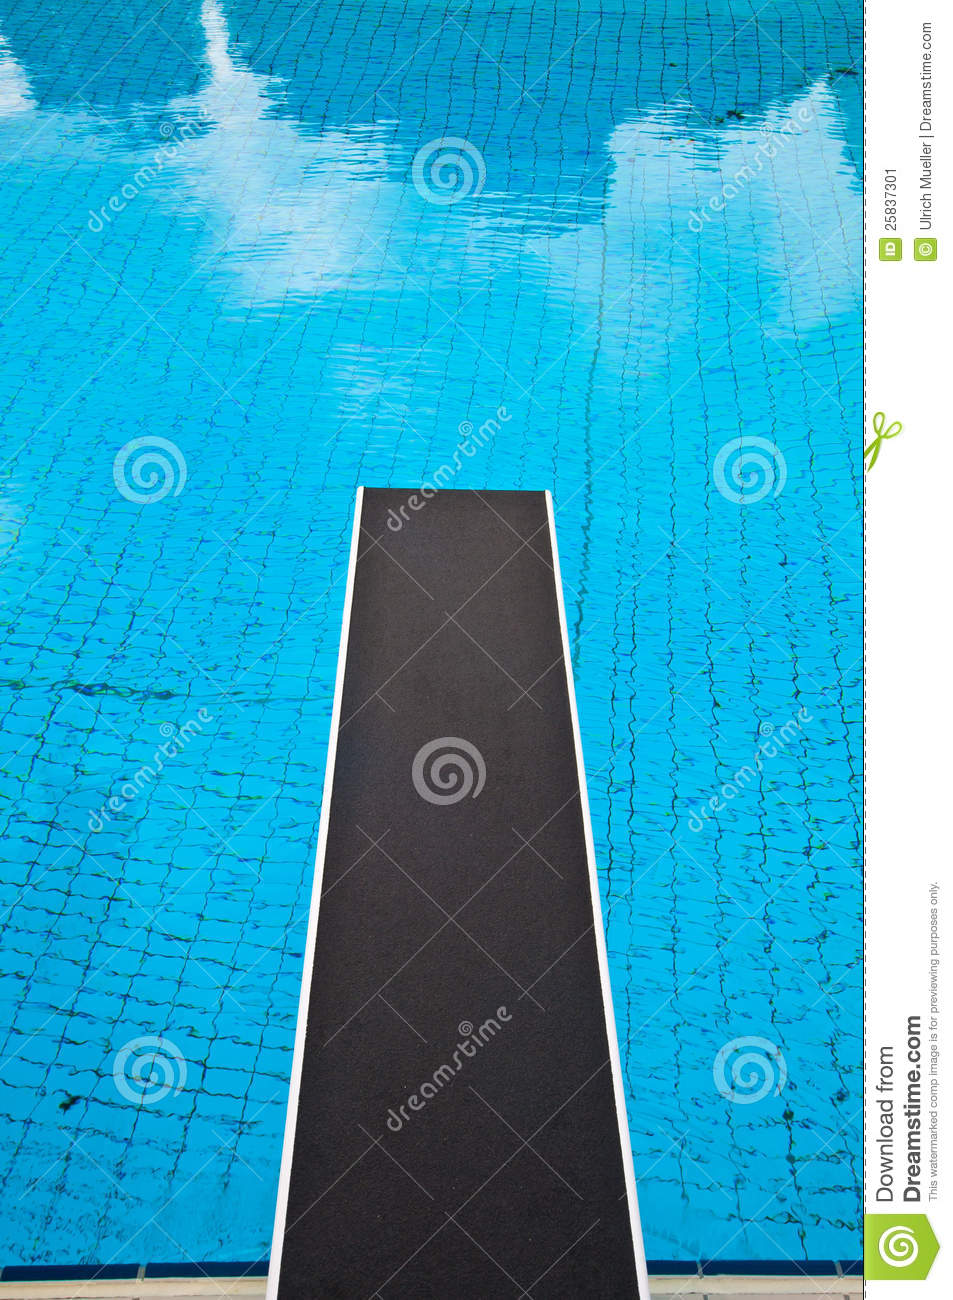 Jumping Board In A Swimming Pool Stock Image - Image of ...